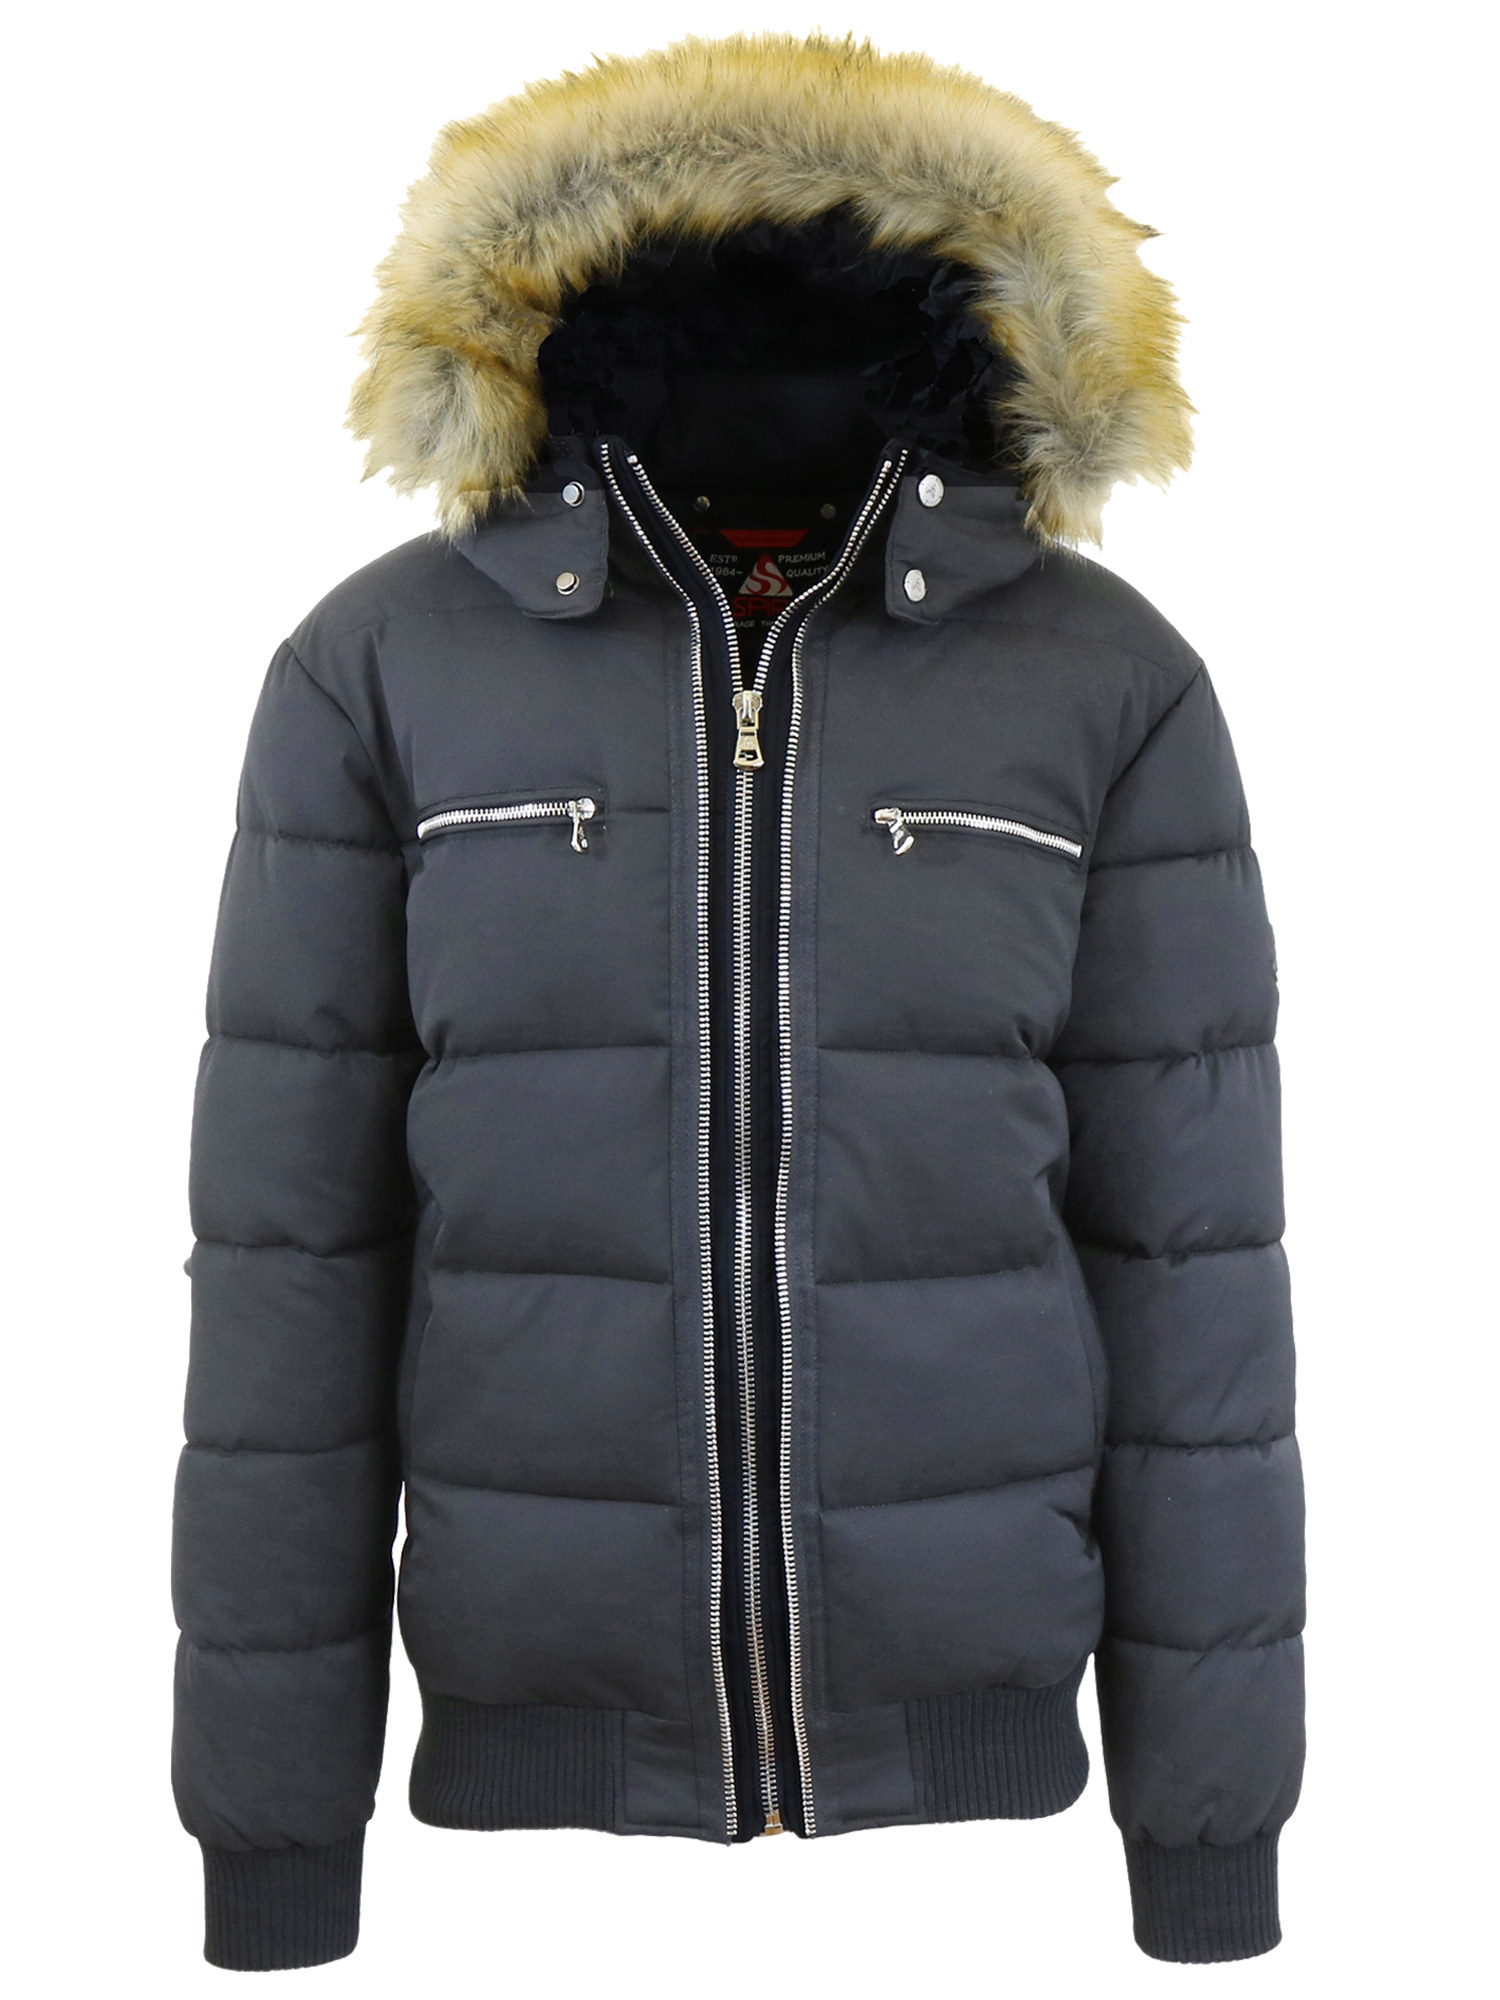 Mens Heavyweight Hooded Parka Jacket With Stripe Trim